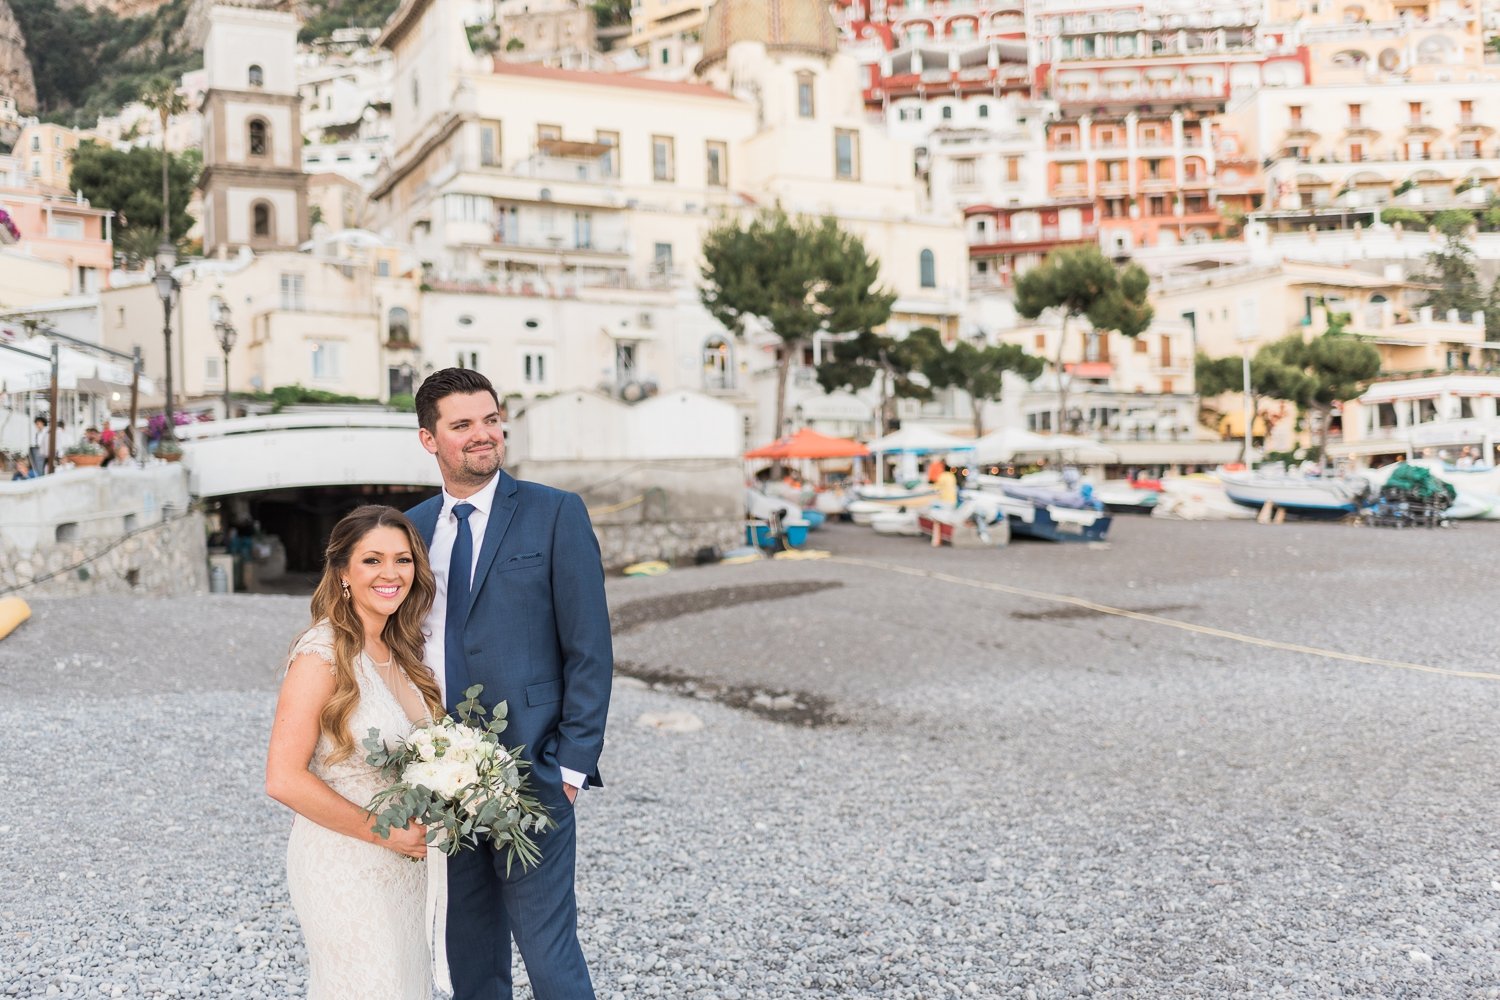 positano-wedding-photographer 36.jpg